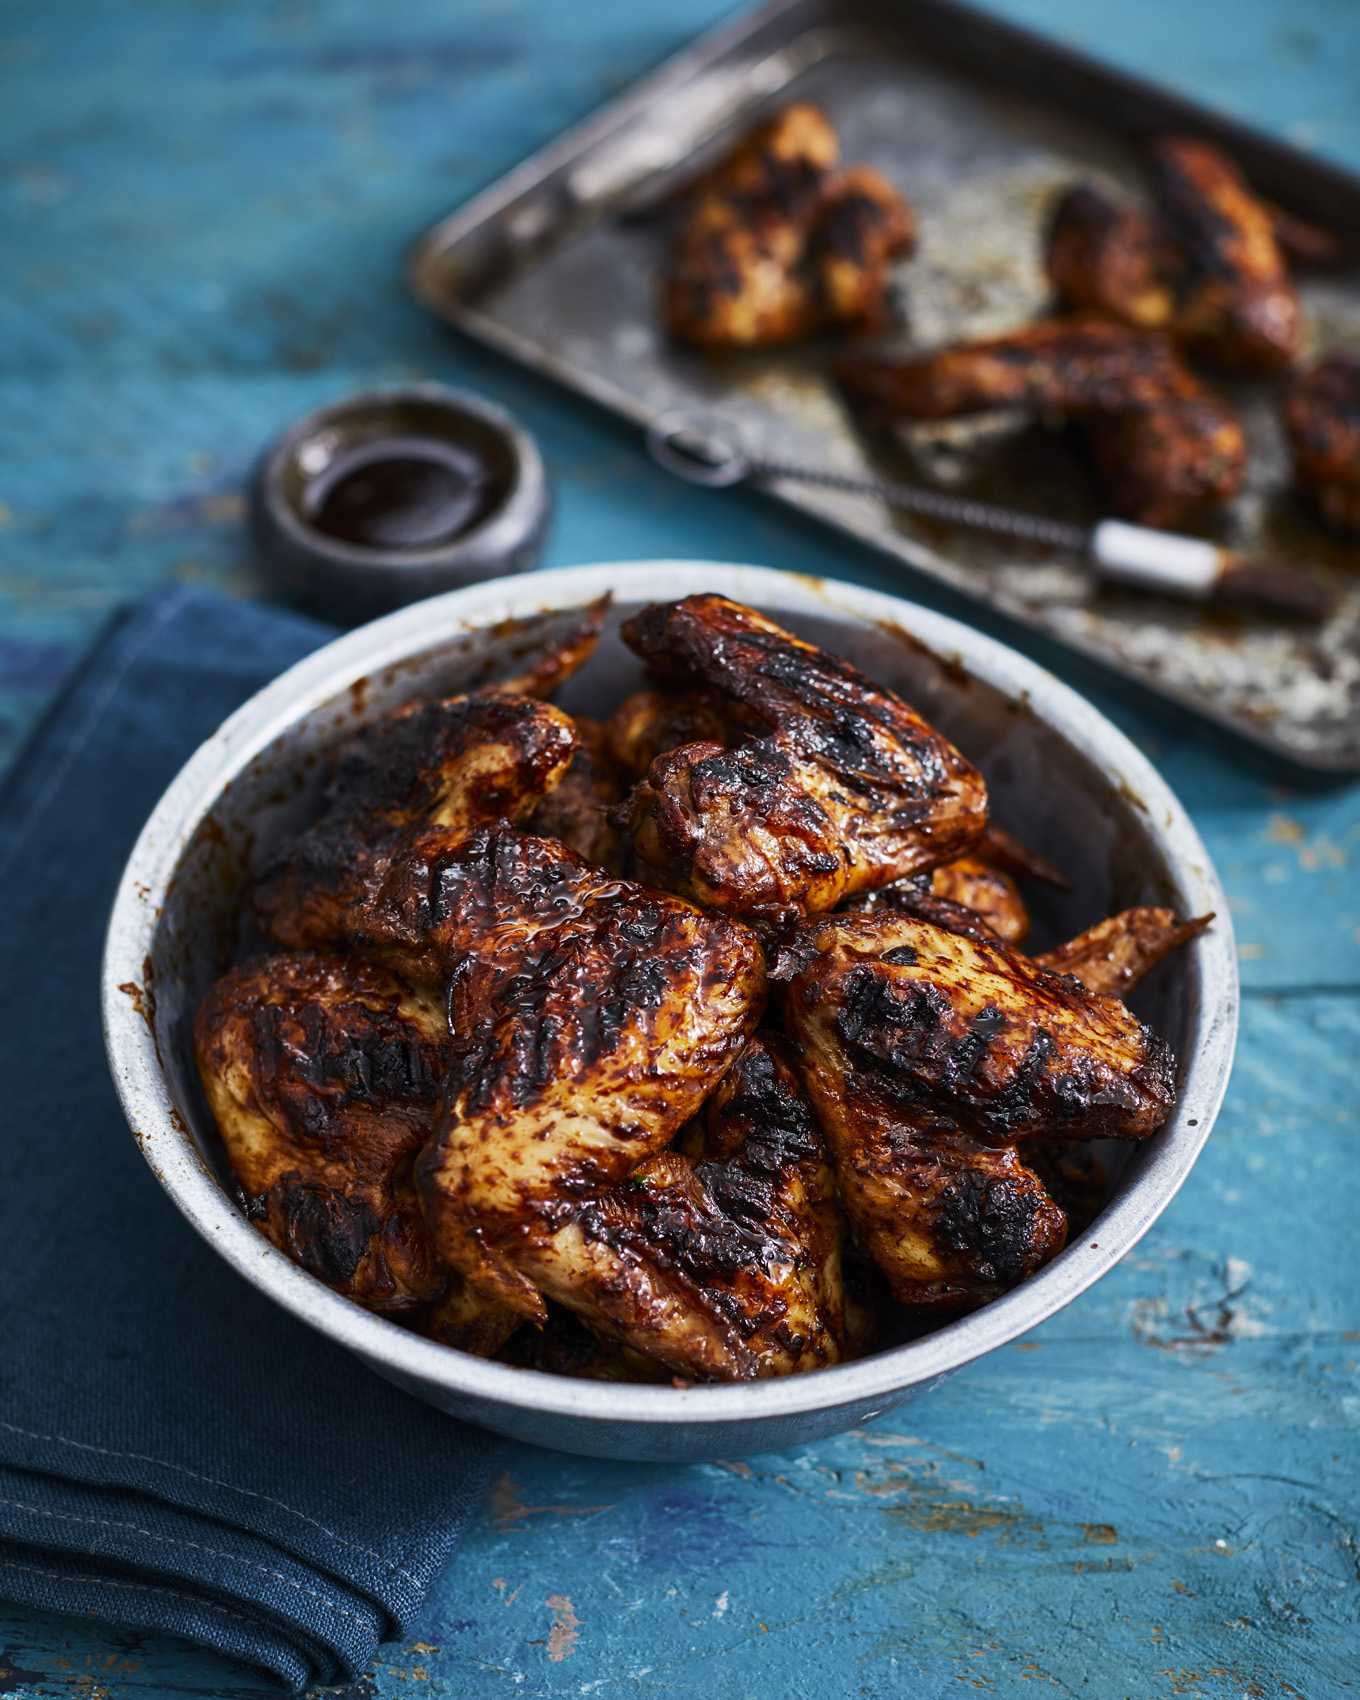 SteveRyan_Photographer_Food_Tabasco_ChickenWings03